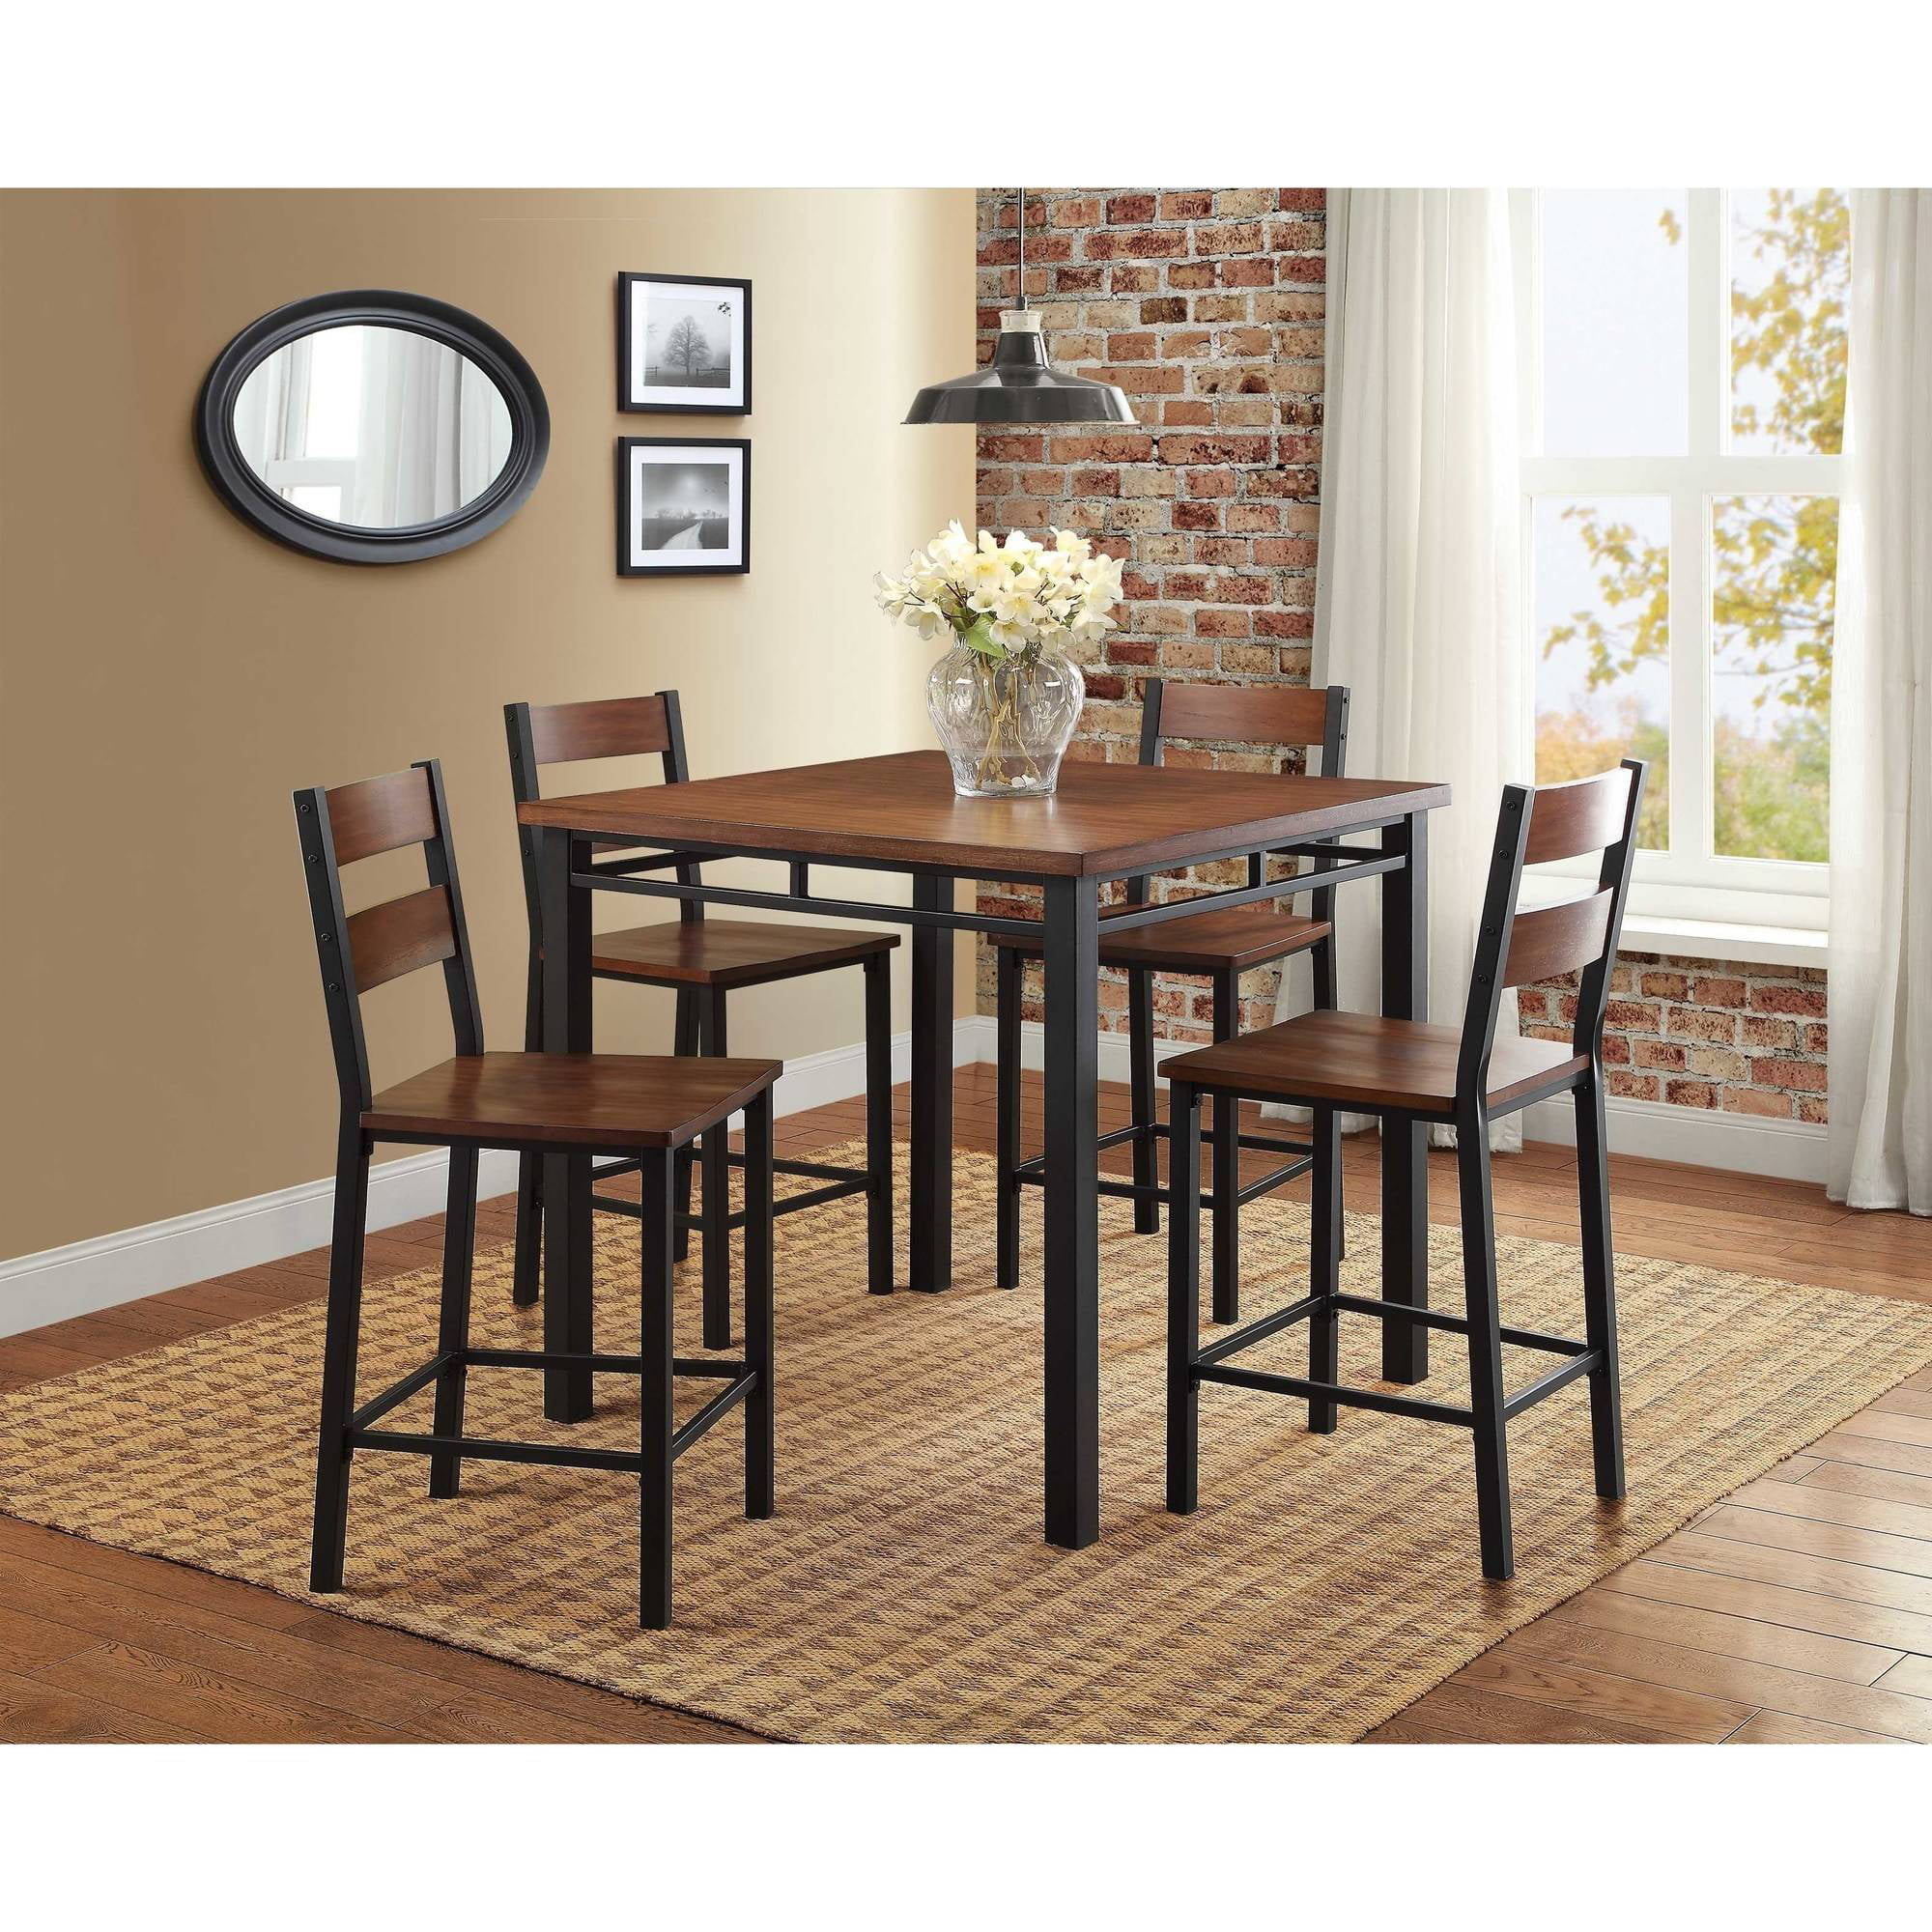 Kitchen U0026 Dining Furniture   Walmart.com